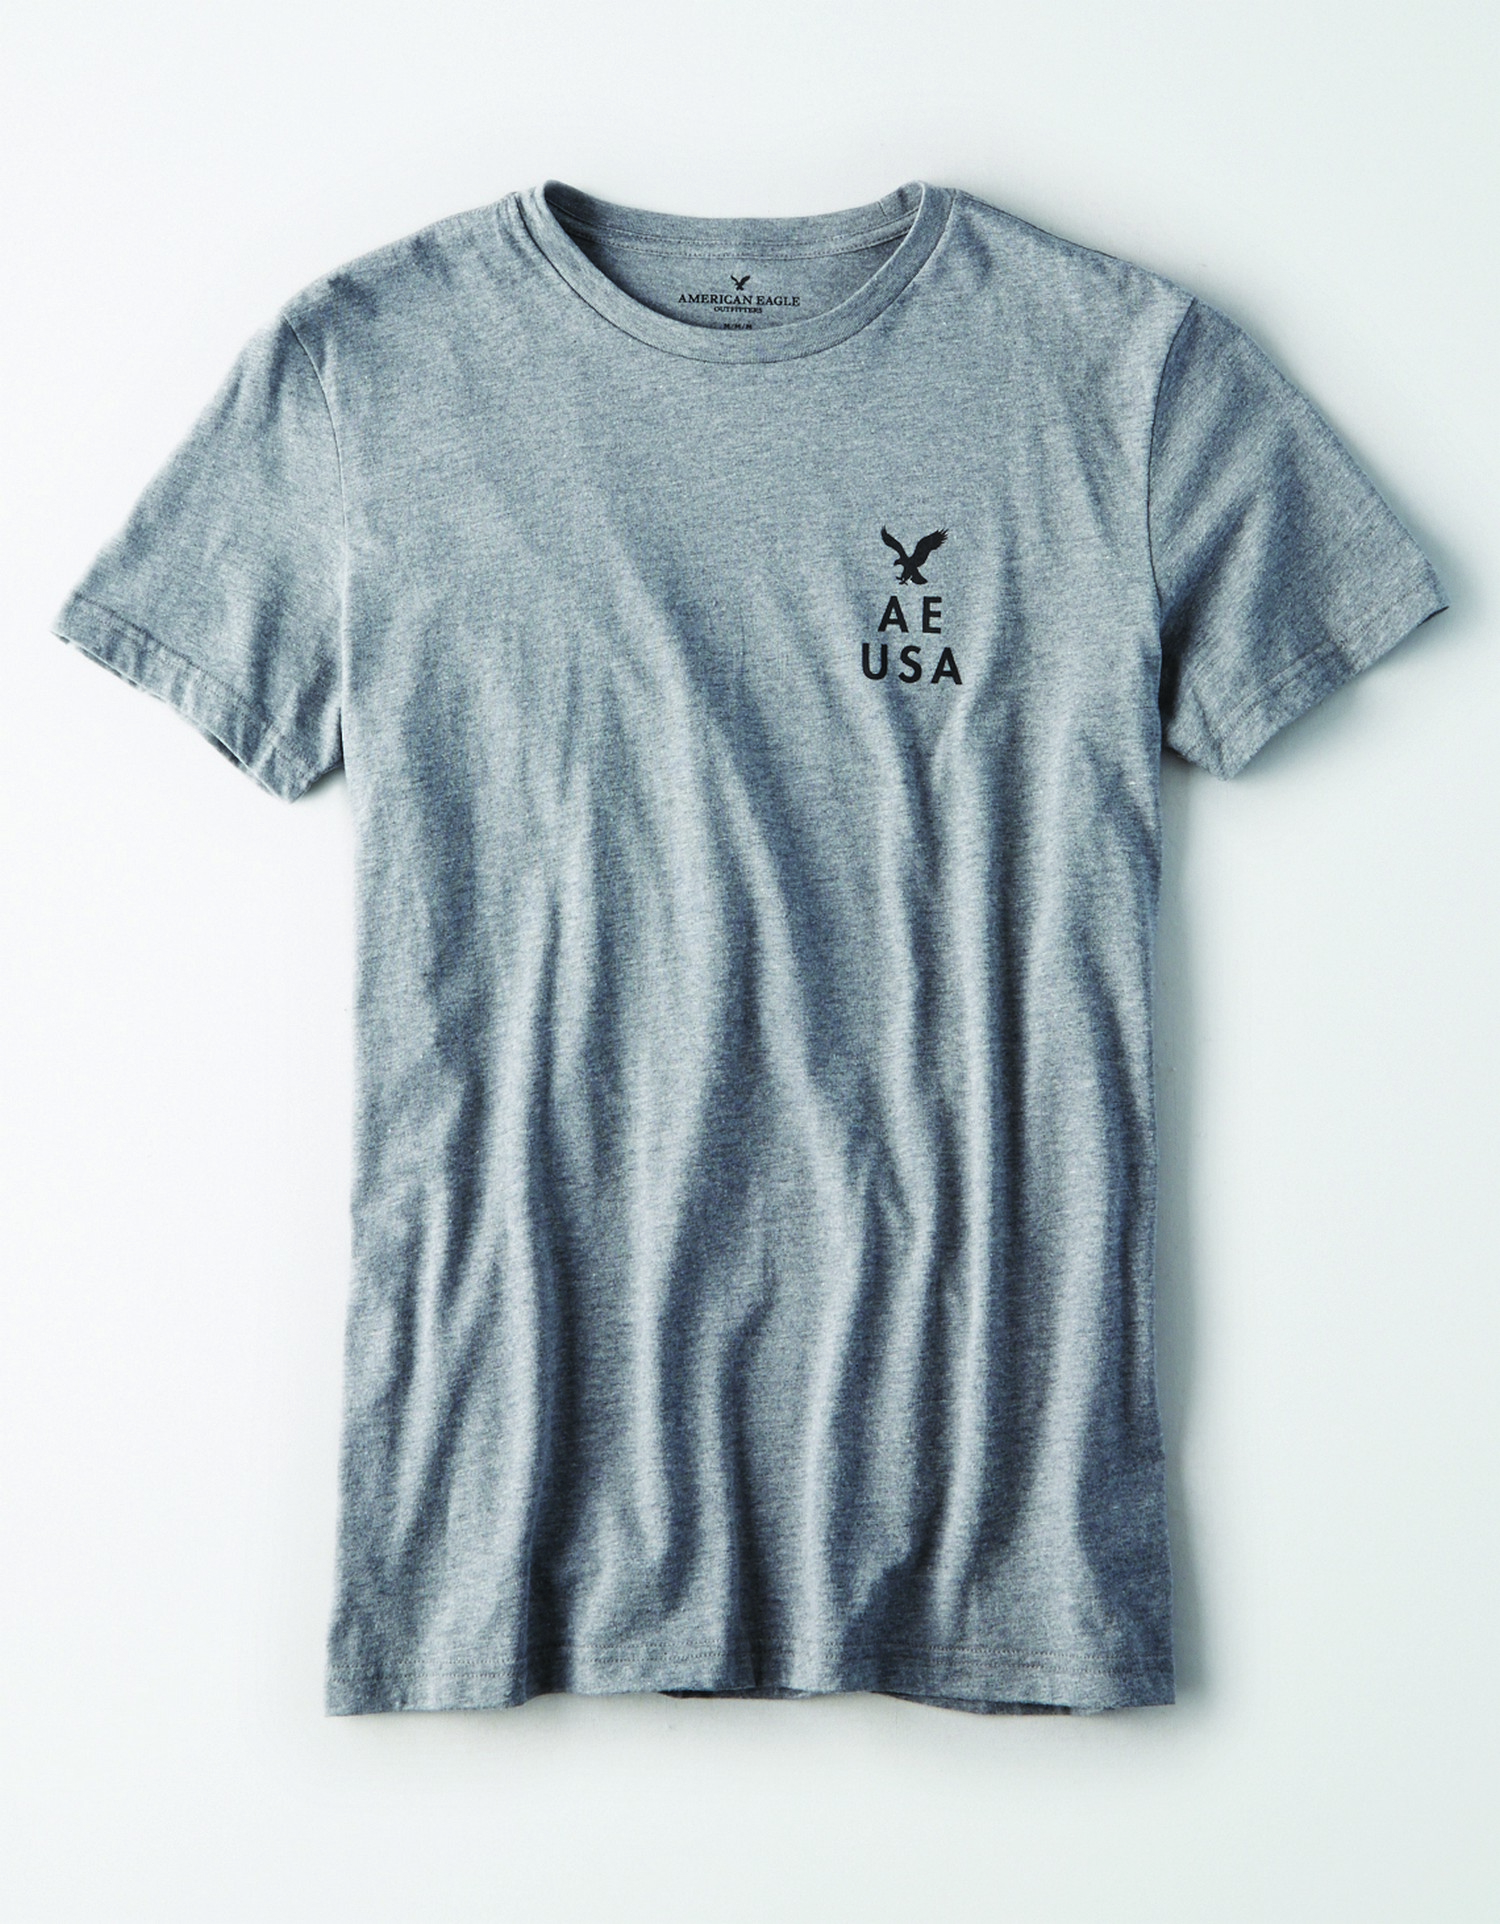 Ae- M-S/S VALUE TEE- grey with black AE USA and eagle graphic on the left chest BG *Tracked